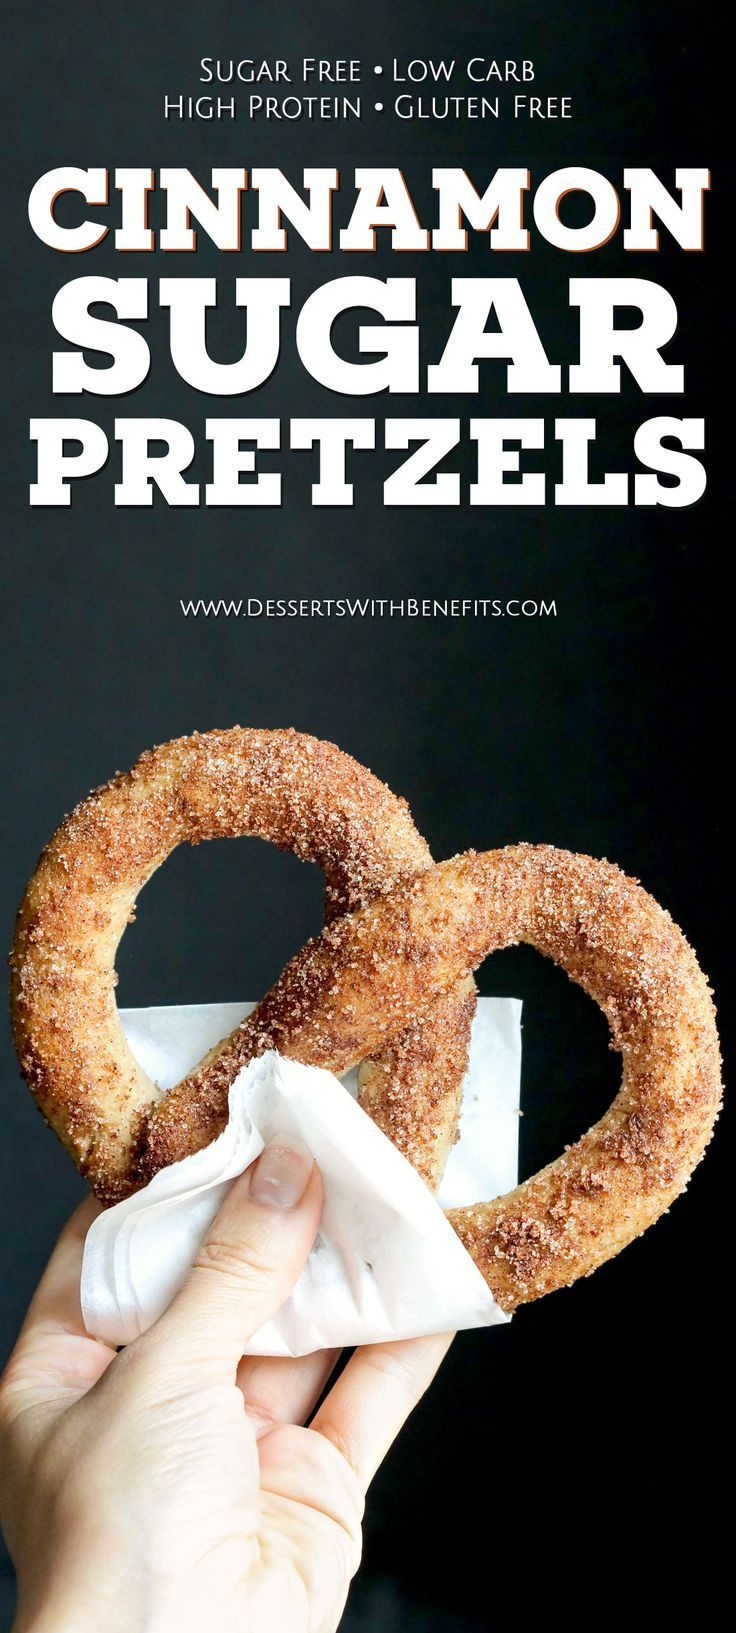 These Healthy Low Carb and Gluten Free Cinnamon Sugar Soft Pretzels are so fluffy and delicious, you'll never believe they're sugar free, low carb, high protein, and high fiber! -- Healthy Dessert Recipes with sugar free, low calorie, low fat, high protein, gluten free, dairy free, vegan, and raw options at the Desserts With Benefits Blog (www.DessertsWithBenefits.com)